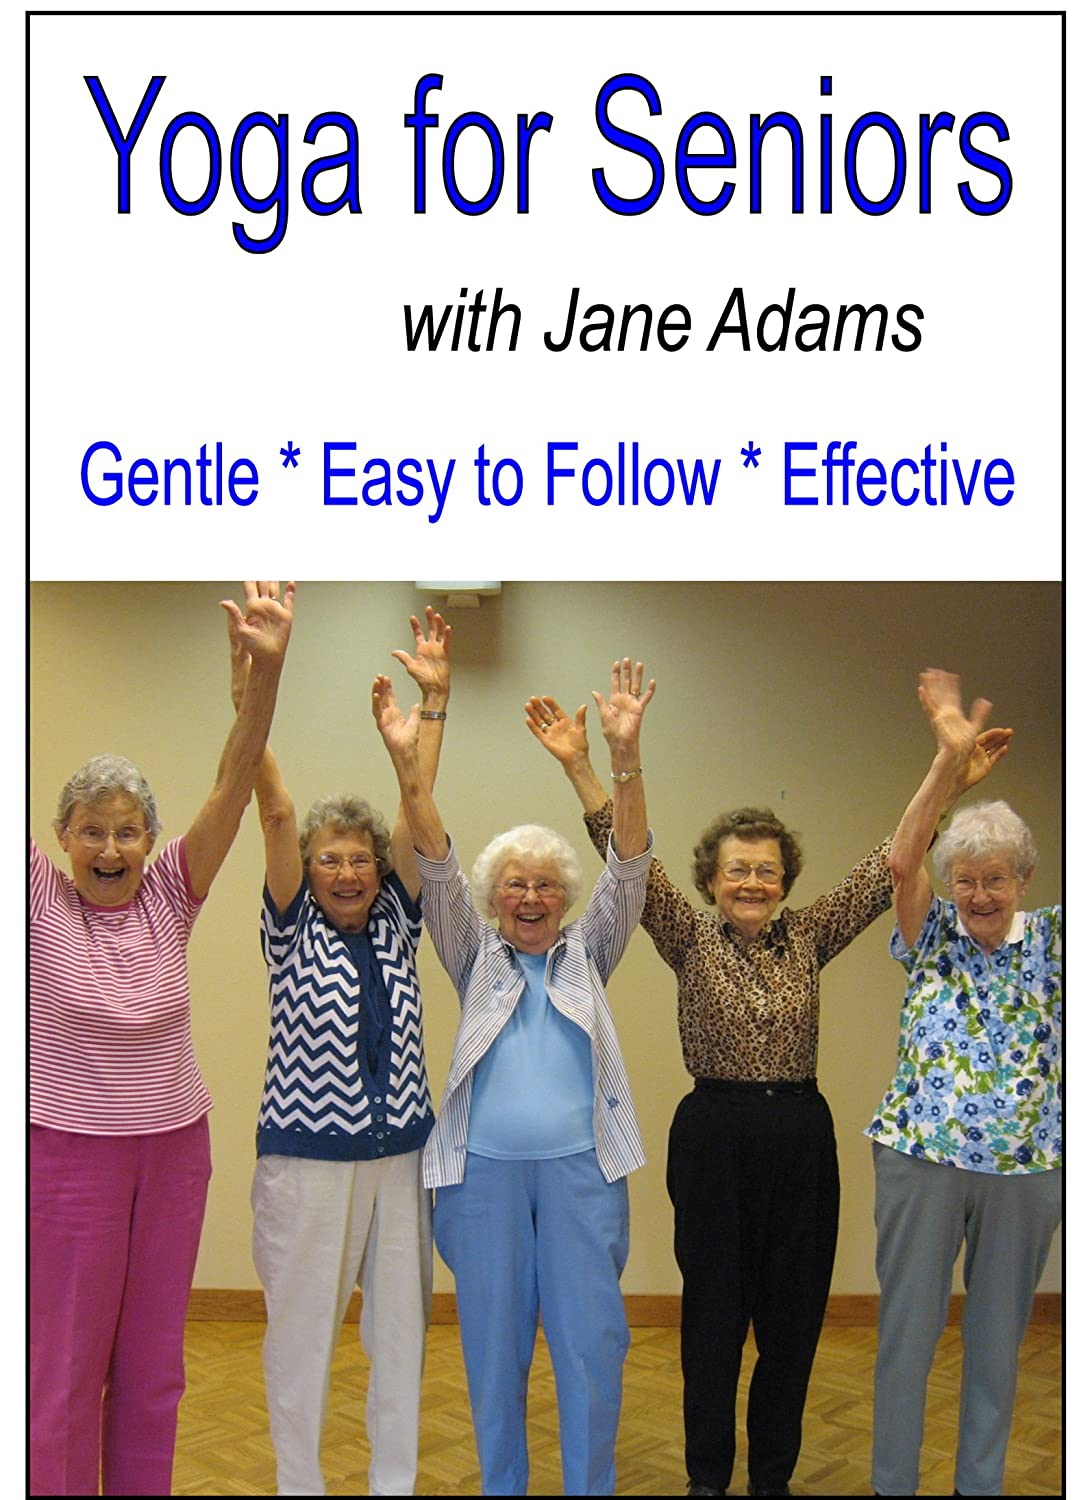 Chair yoga elderly - Amazon Com Yoga For Seniors With Jane Adams Improve Balance Strength And Flexibility With Gentle Senior Yoga Jane Adams Movies Tv